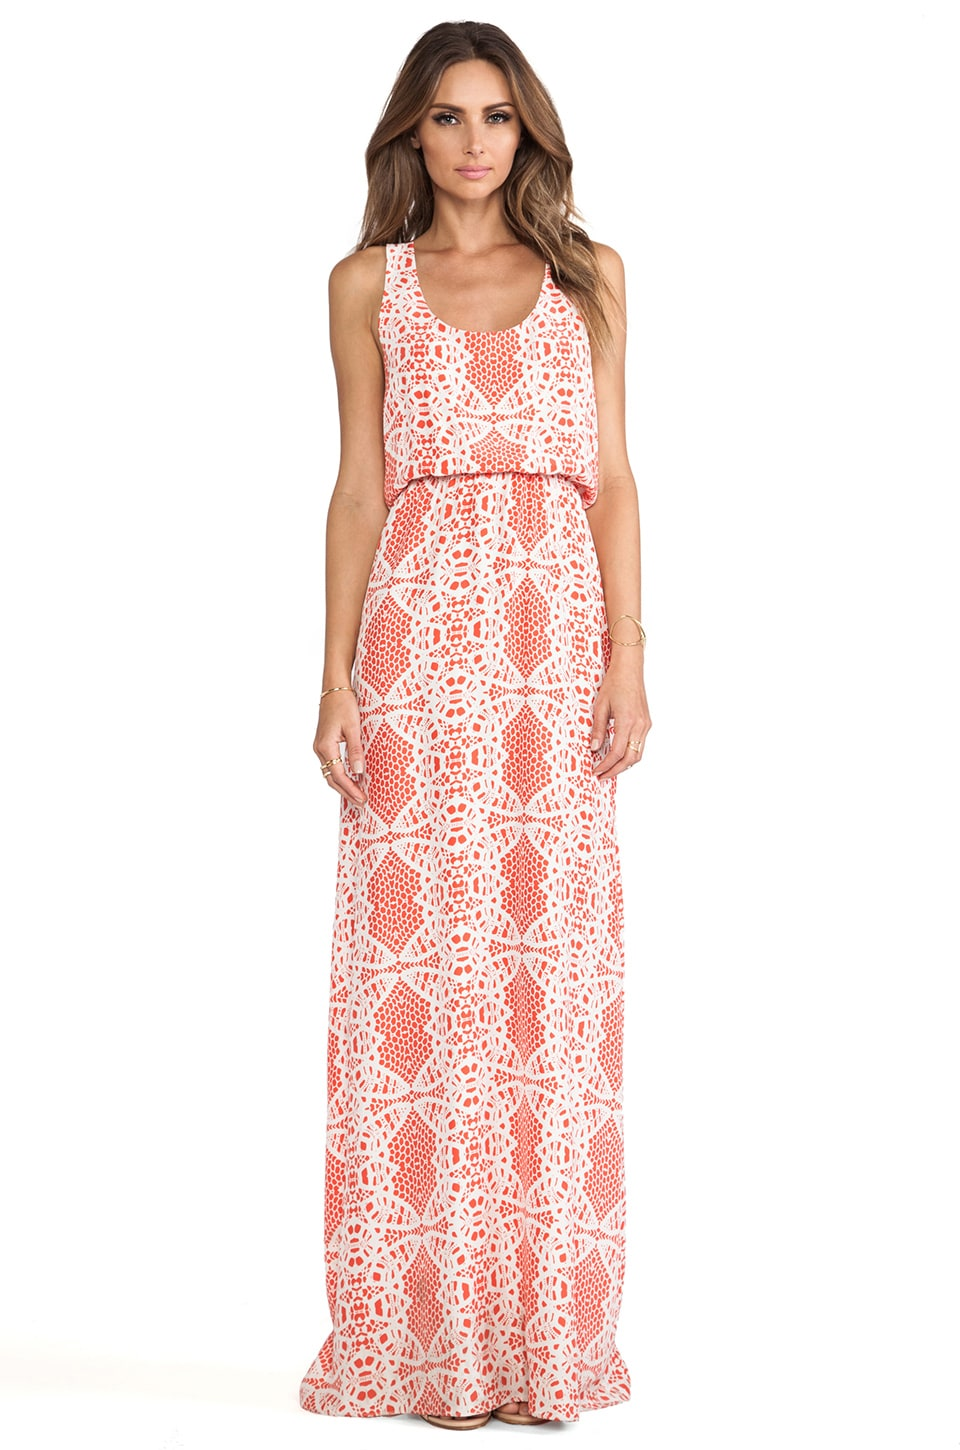 Parker Cassie Dress in Dragon Fruit & Madeira